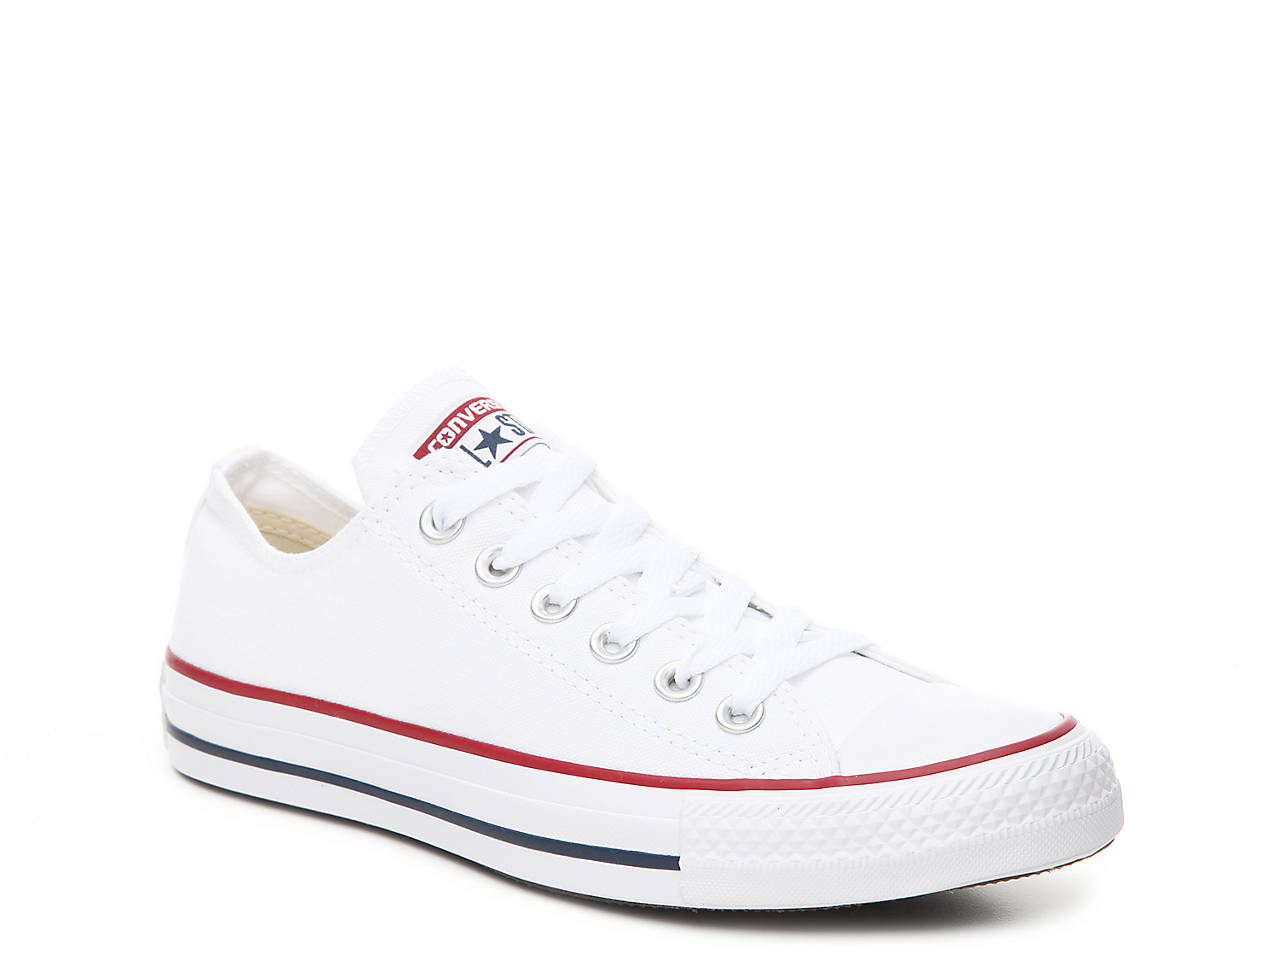 d328aceaa8b2 Converse Chuck Taylor All Star Sneaker - Women s Women s Shoes